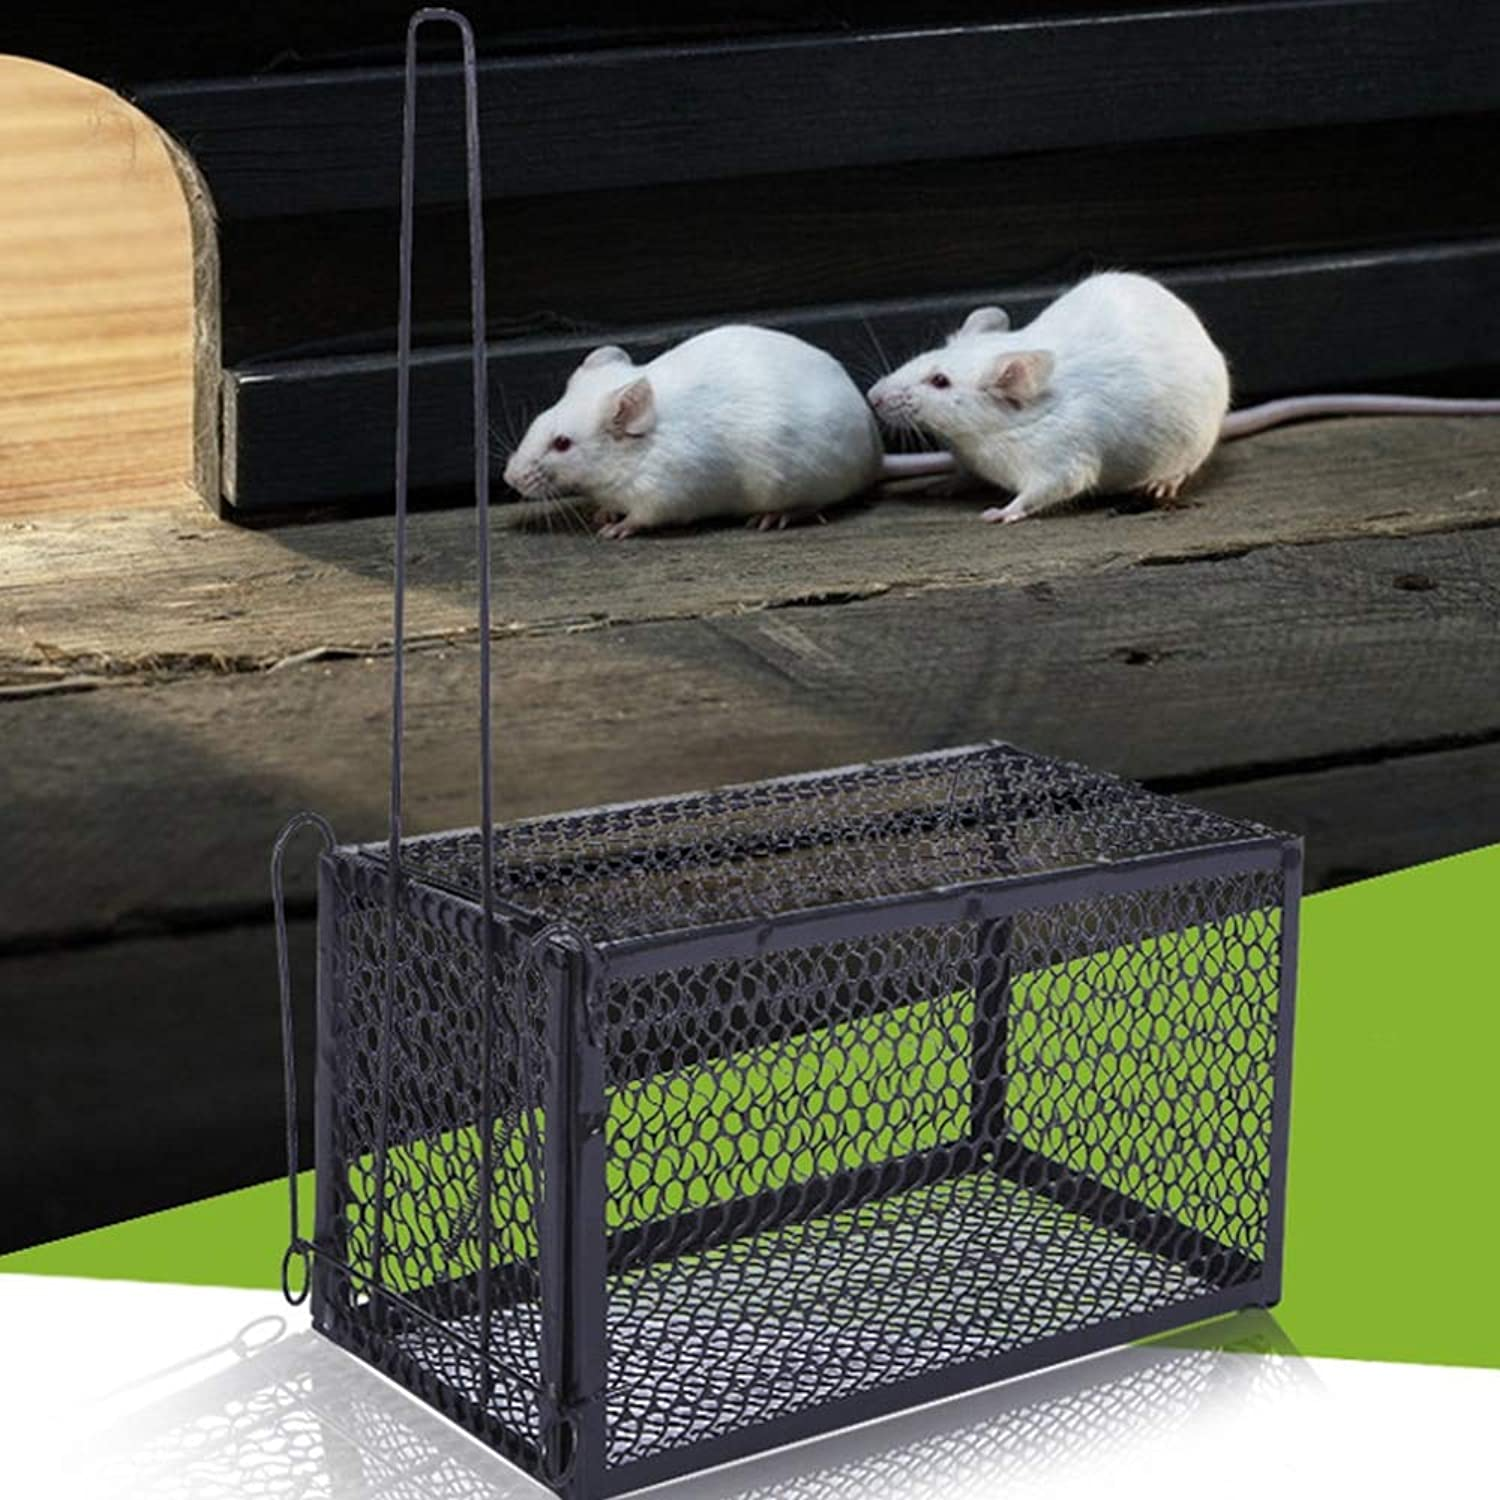 New Rat Cage Mice Animal Control Catch Bait Hamster Mouse